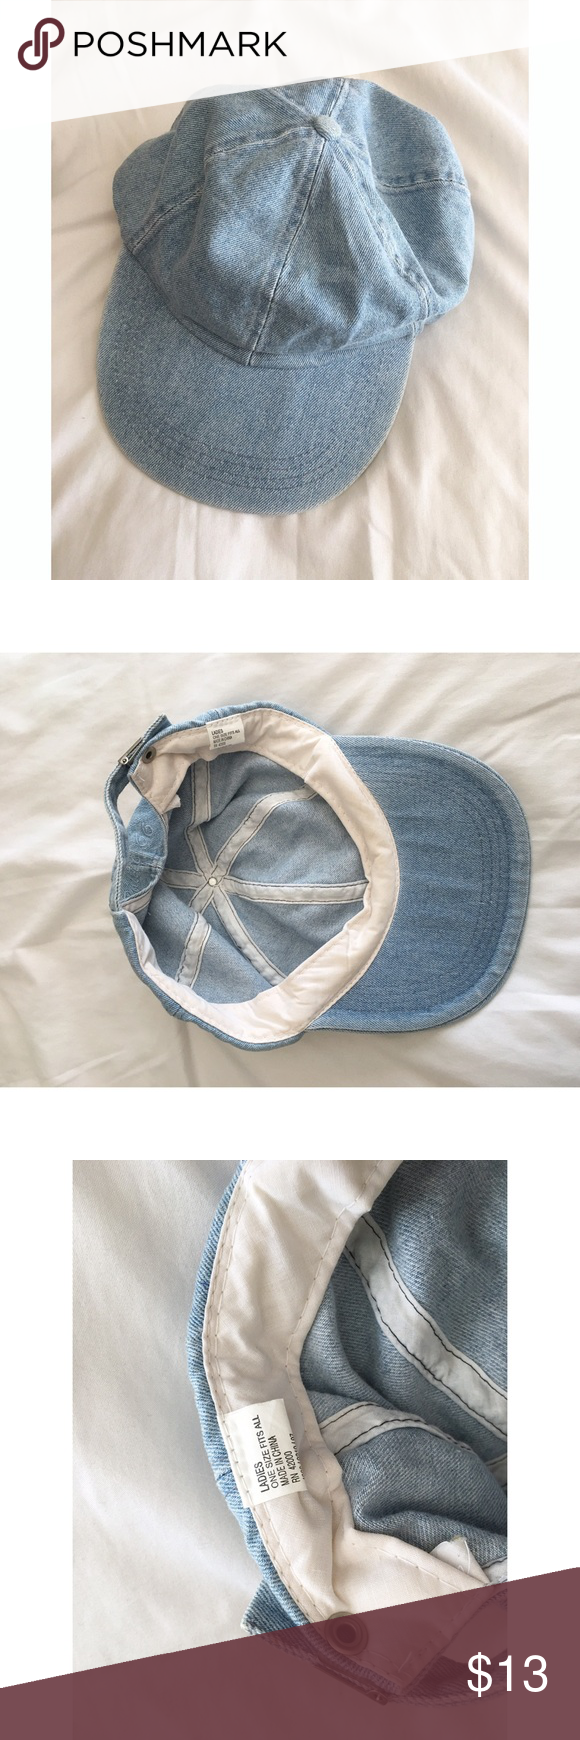 Light Denim baseball dad cap vintage Cute baseball cap in light denim. Fits like a vintage dad cap. Super cute! One size fits most.  It has a bit of wear. As shown. Price will reflect.  The hardware has a few scratches, as shown. Accessories Hats